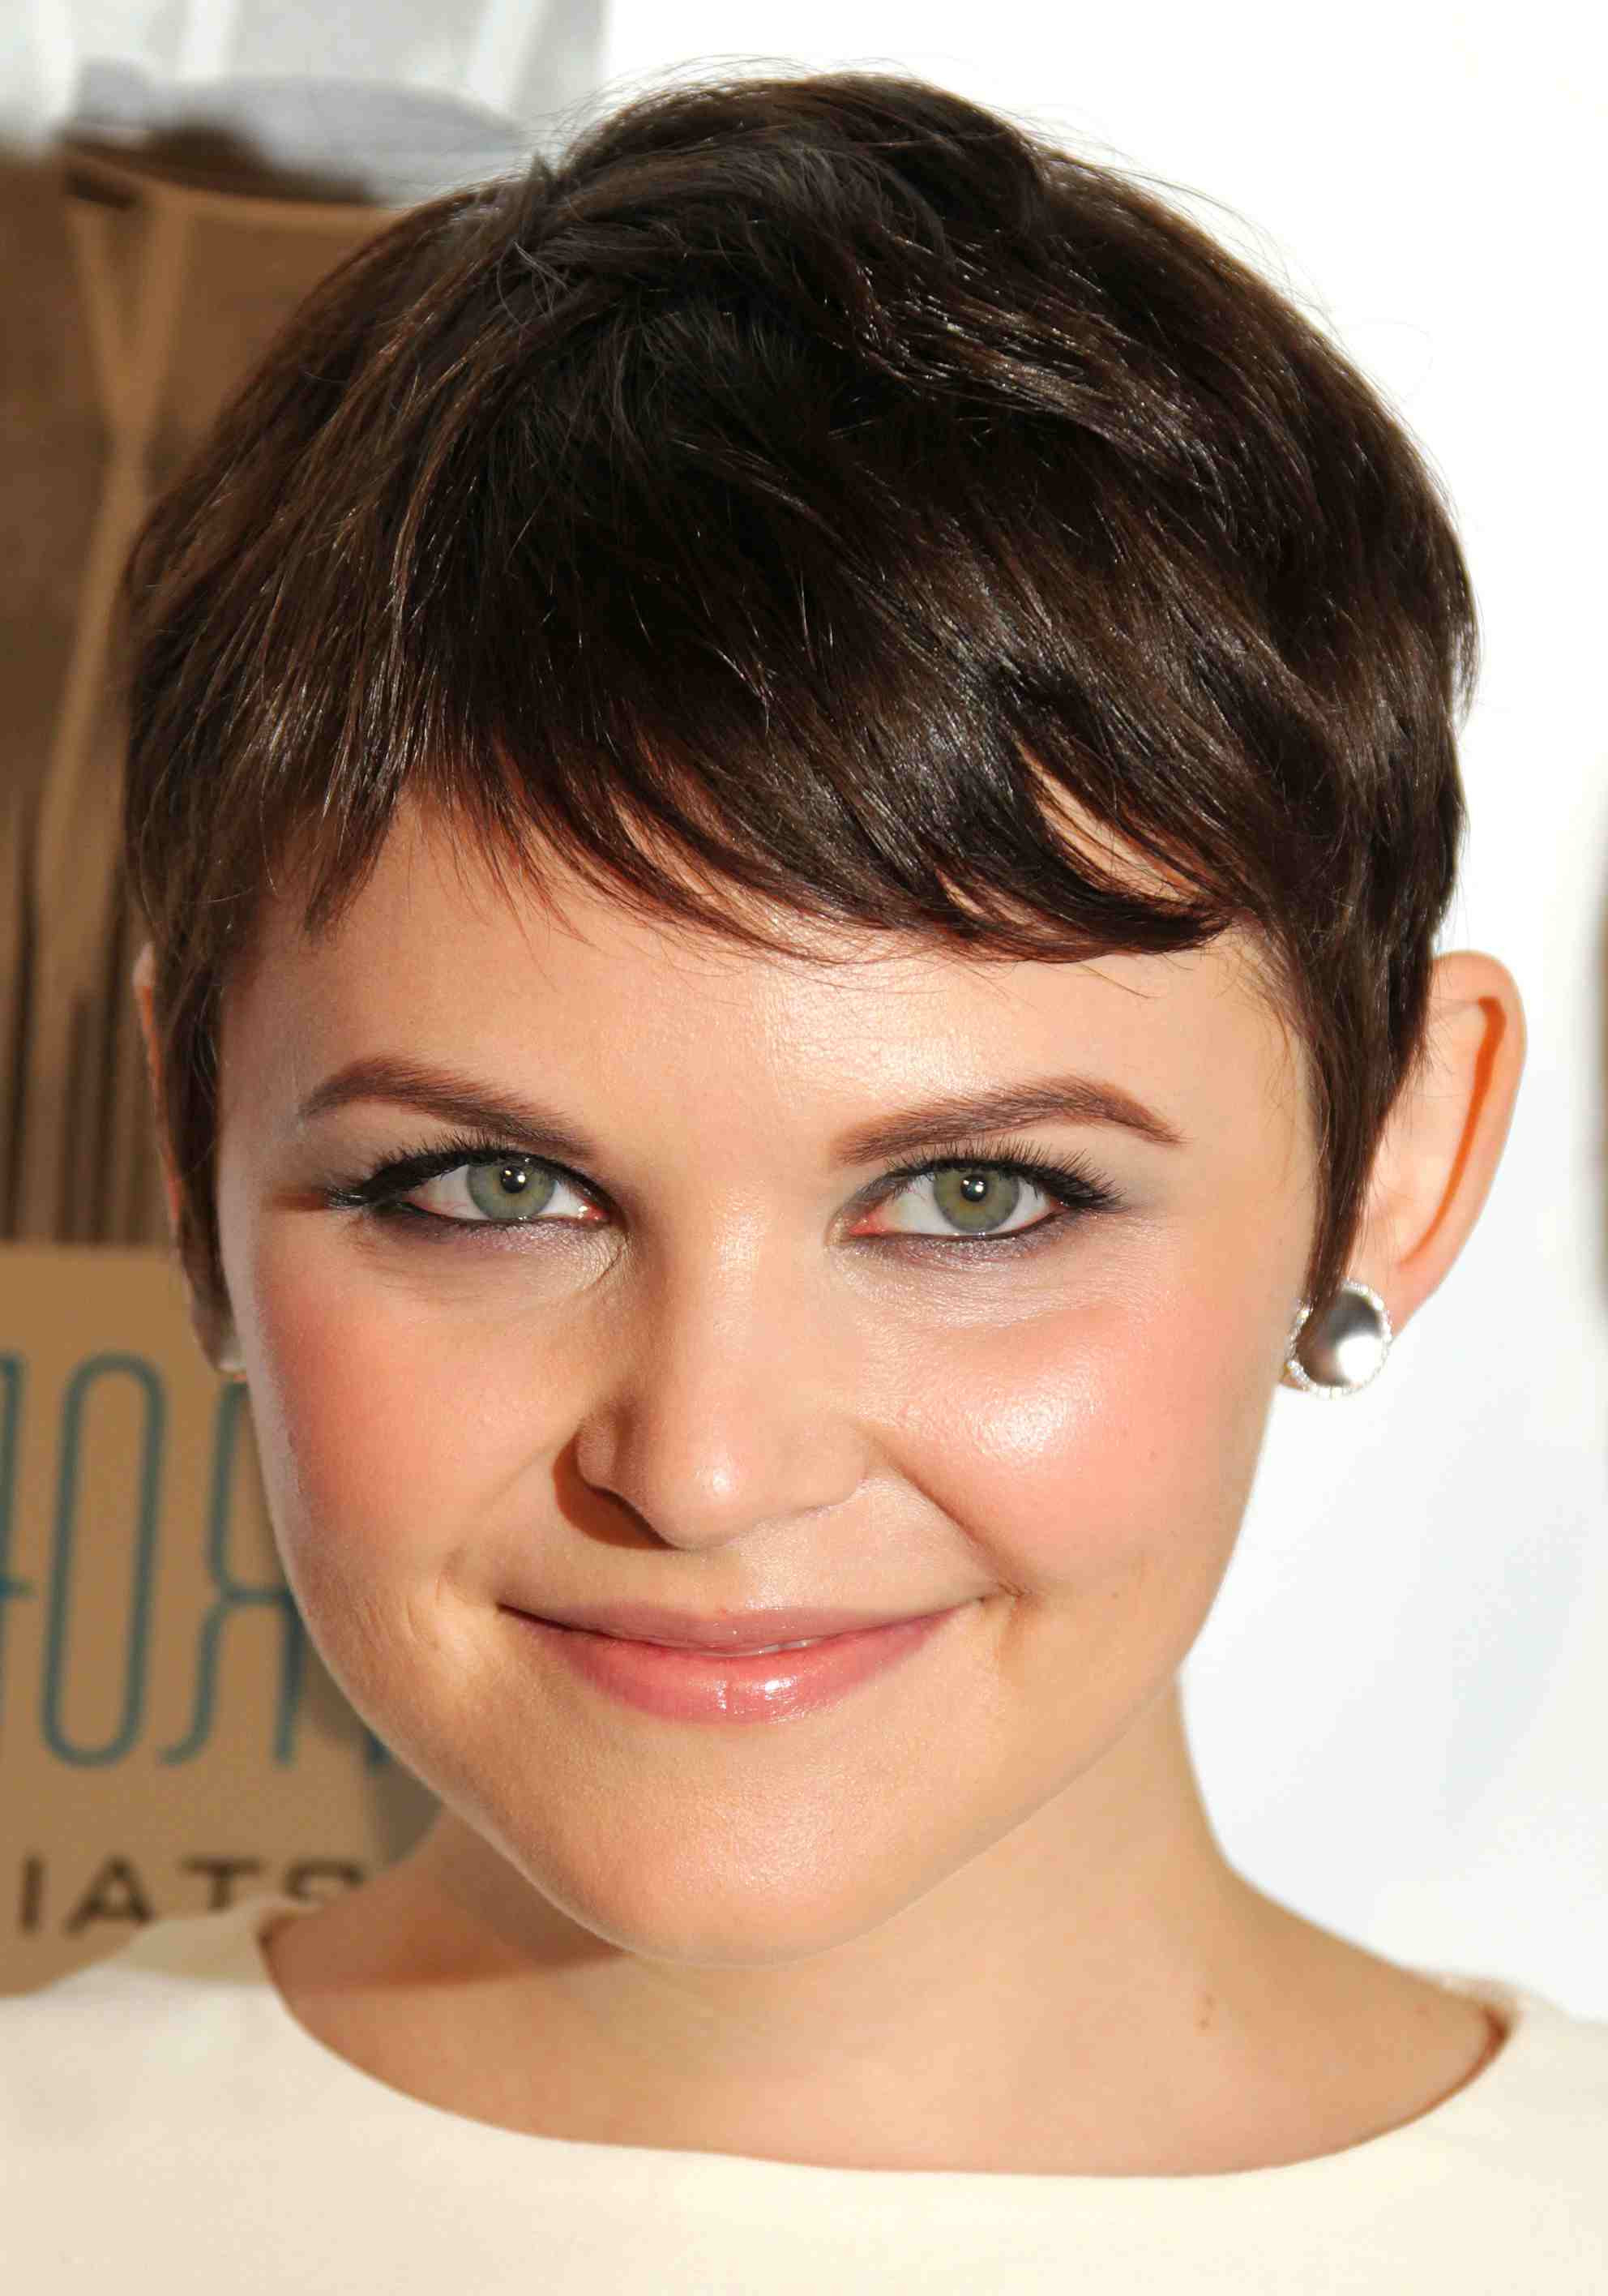 Best Short Hairstyles For Heart Shaped Faces Elegant 15 Flattering Pertaining To Short Hairstyles For Heart Shaped Faces (View 8 of 25)